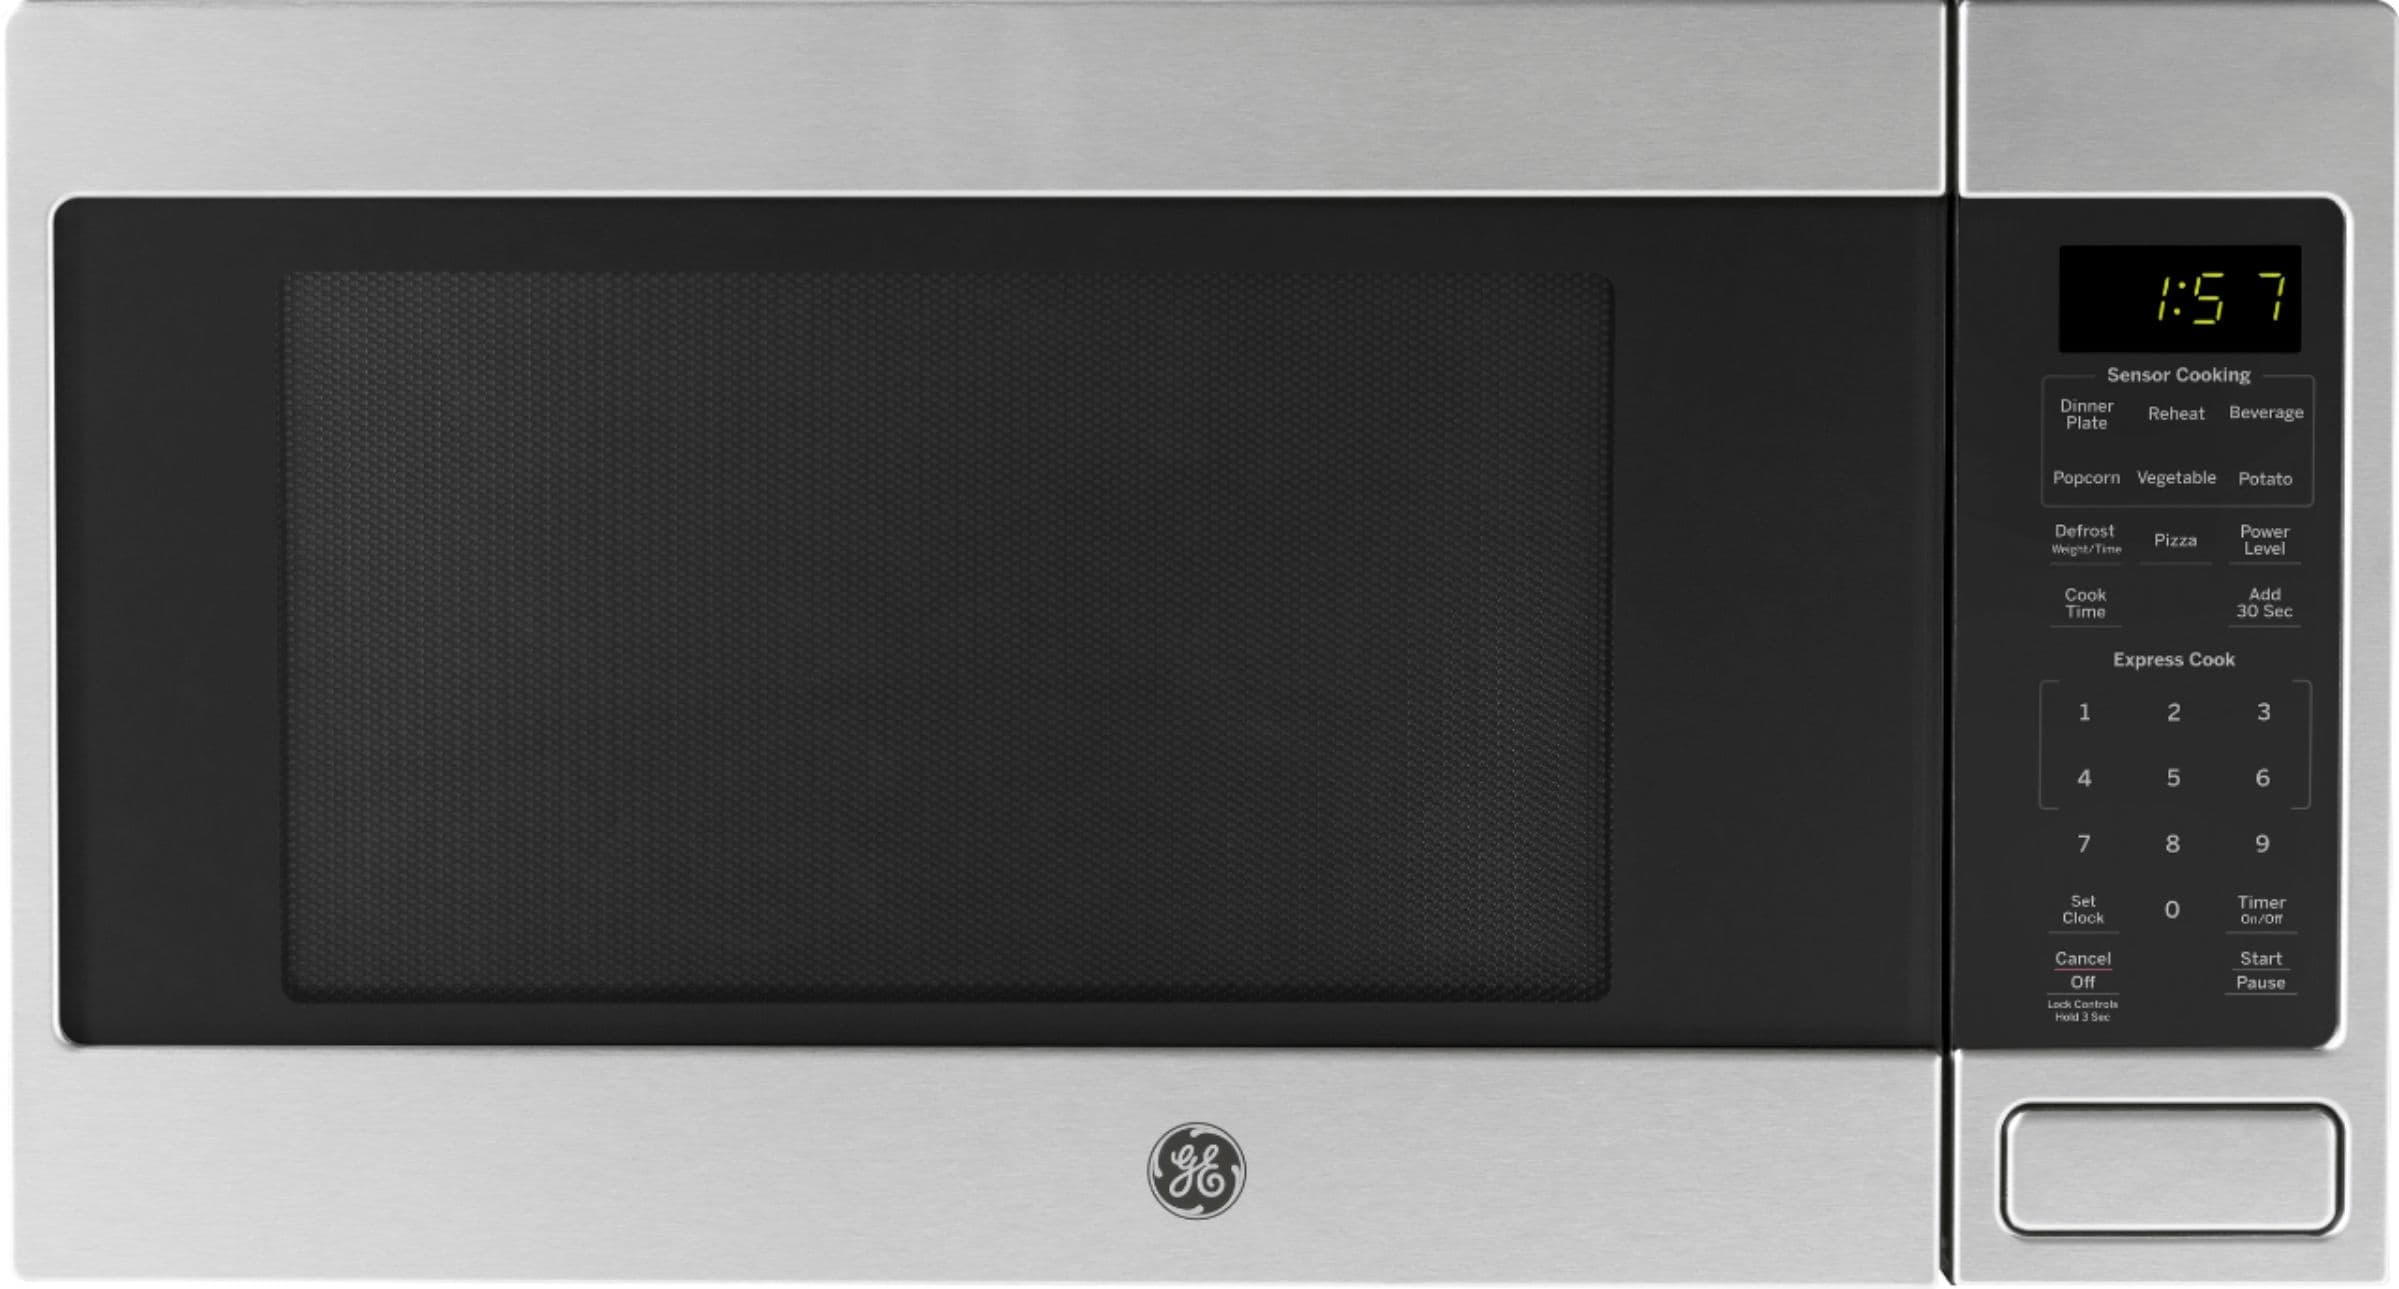 ge 1 6 cu ft microwave with sensor cooking stainless steel